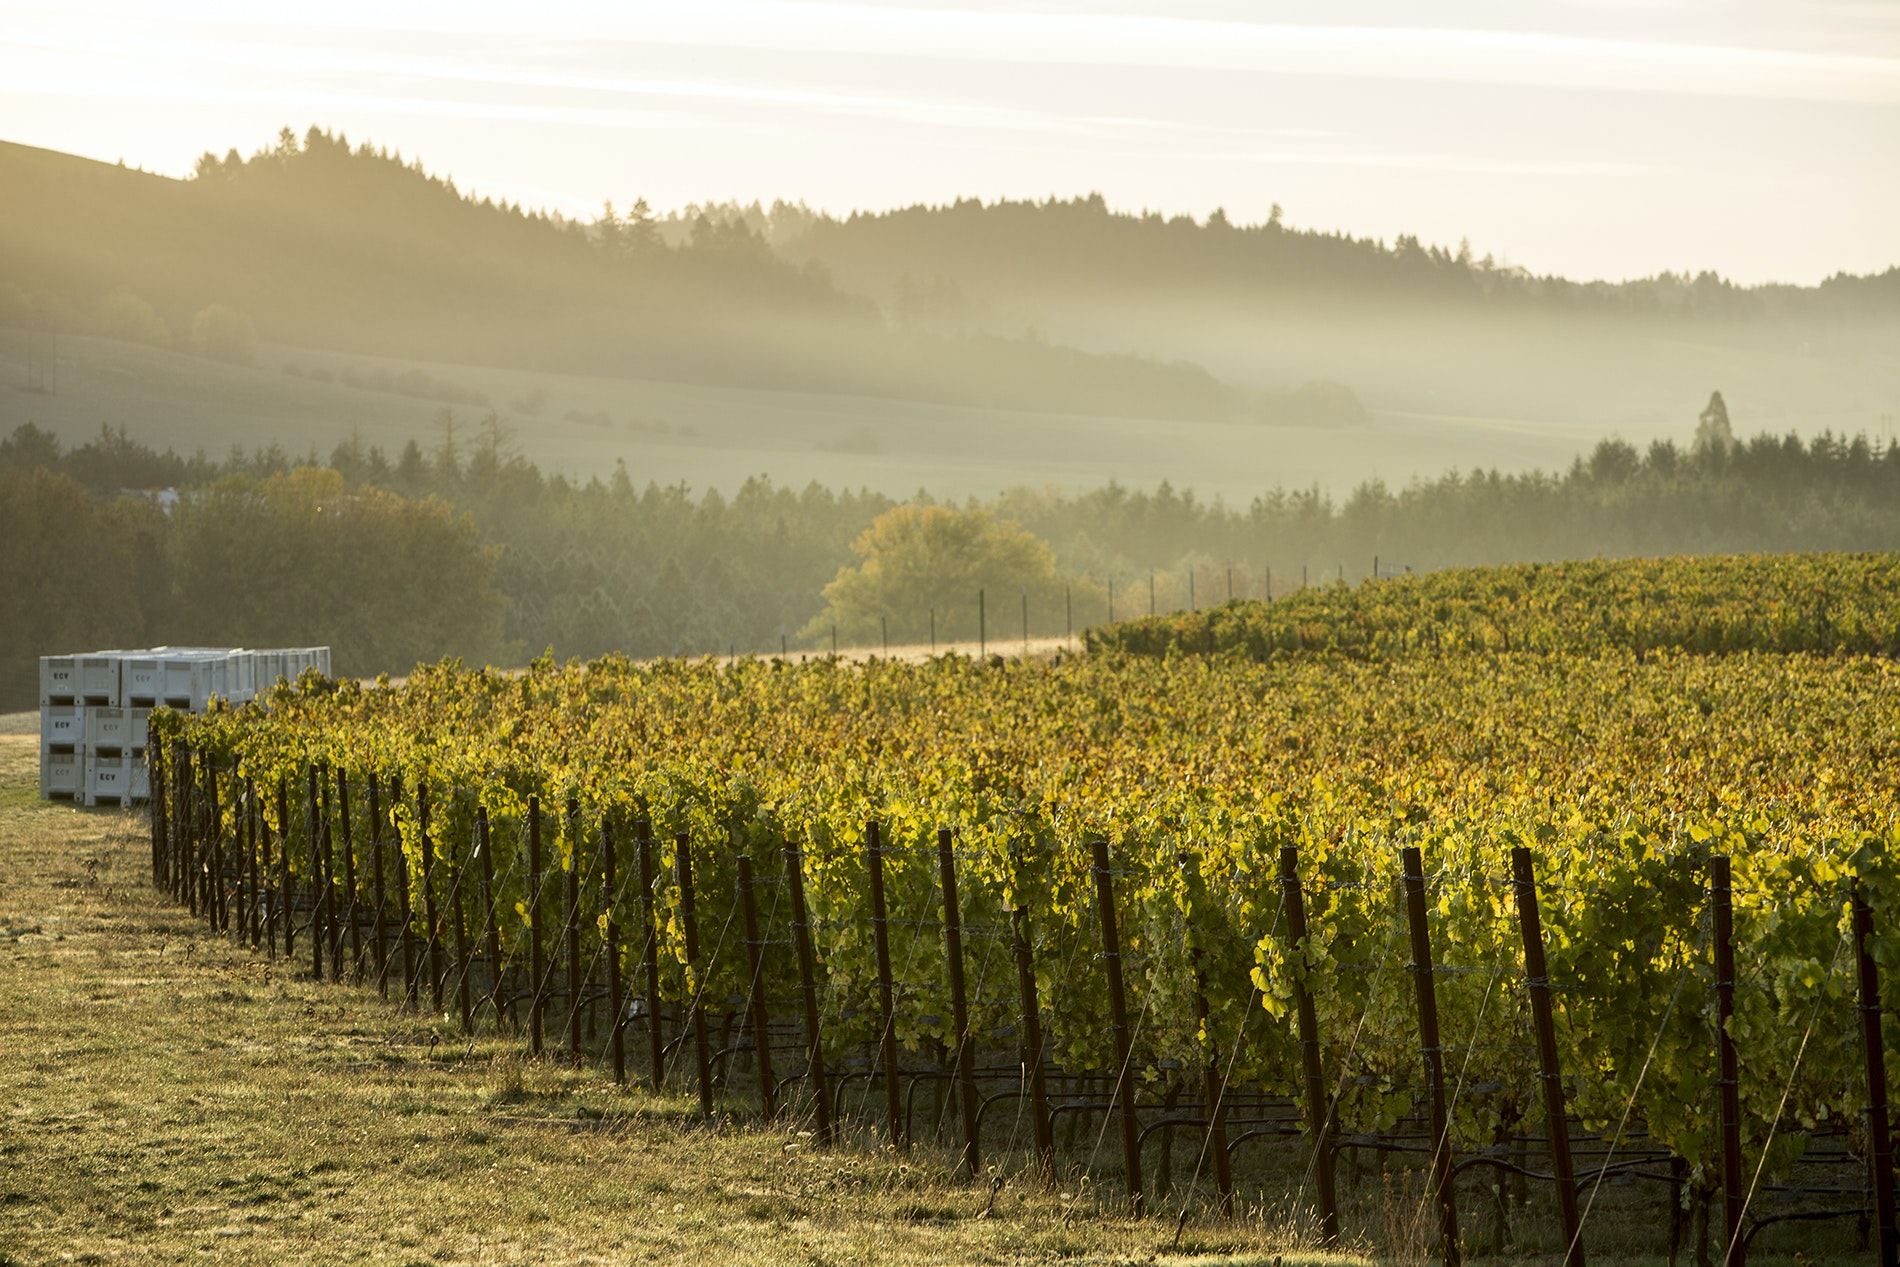 Elk Cove vinifies several different grape varieties, including pinot blanc, pinot gris, riesling, and chardonnay, but its pinot noirs remain the benchmark production.